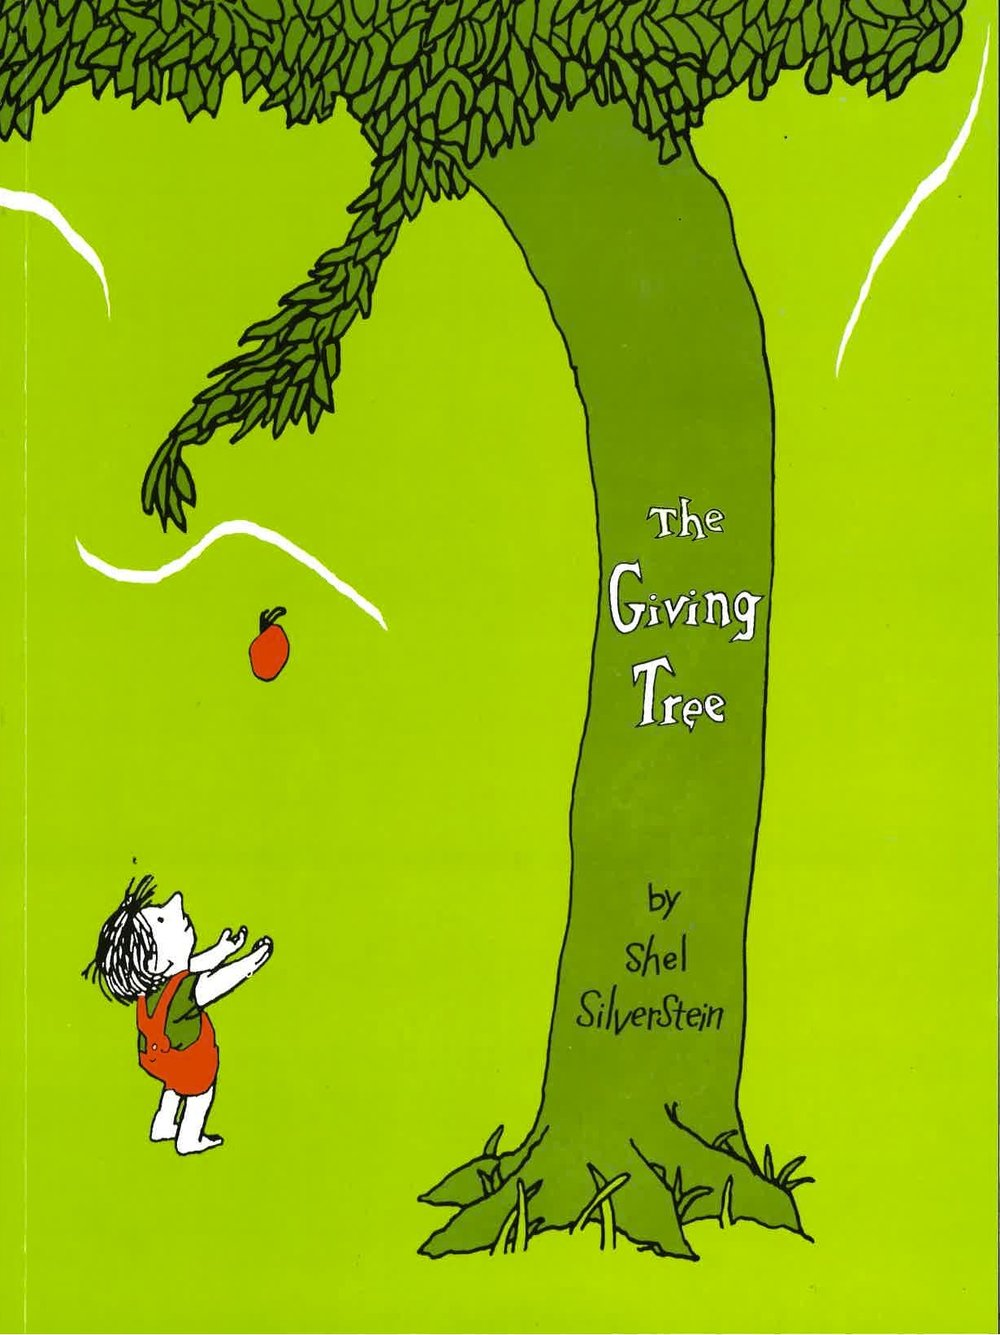 5 giving tree_001.jpg